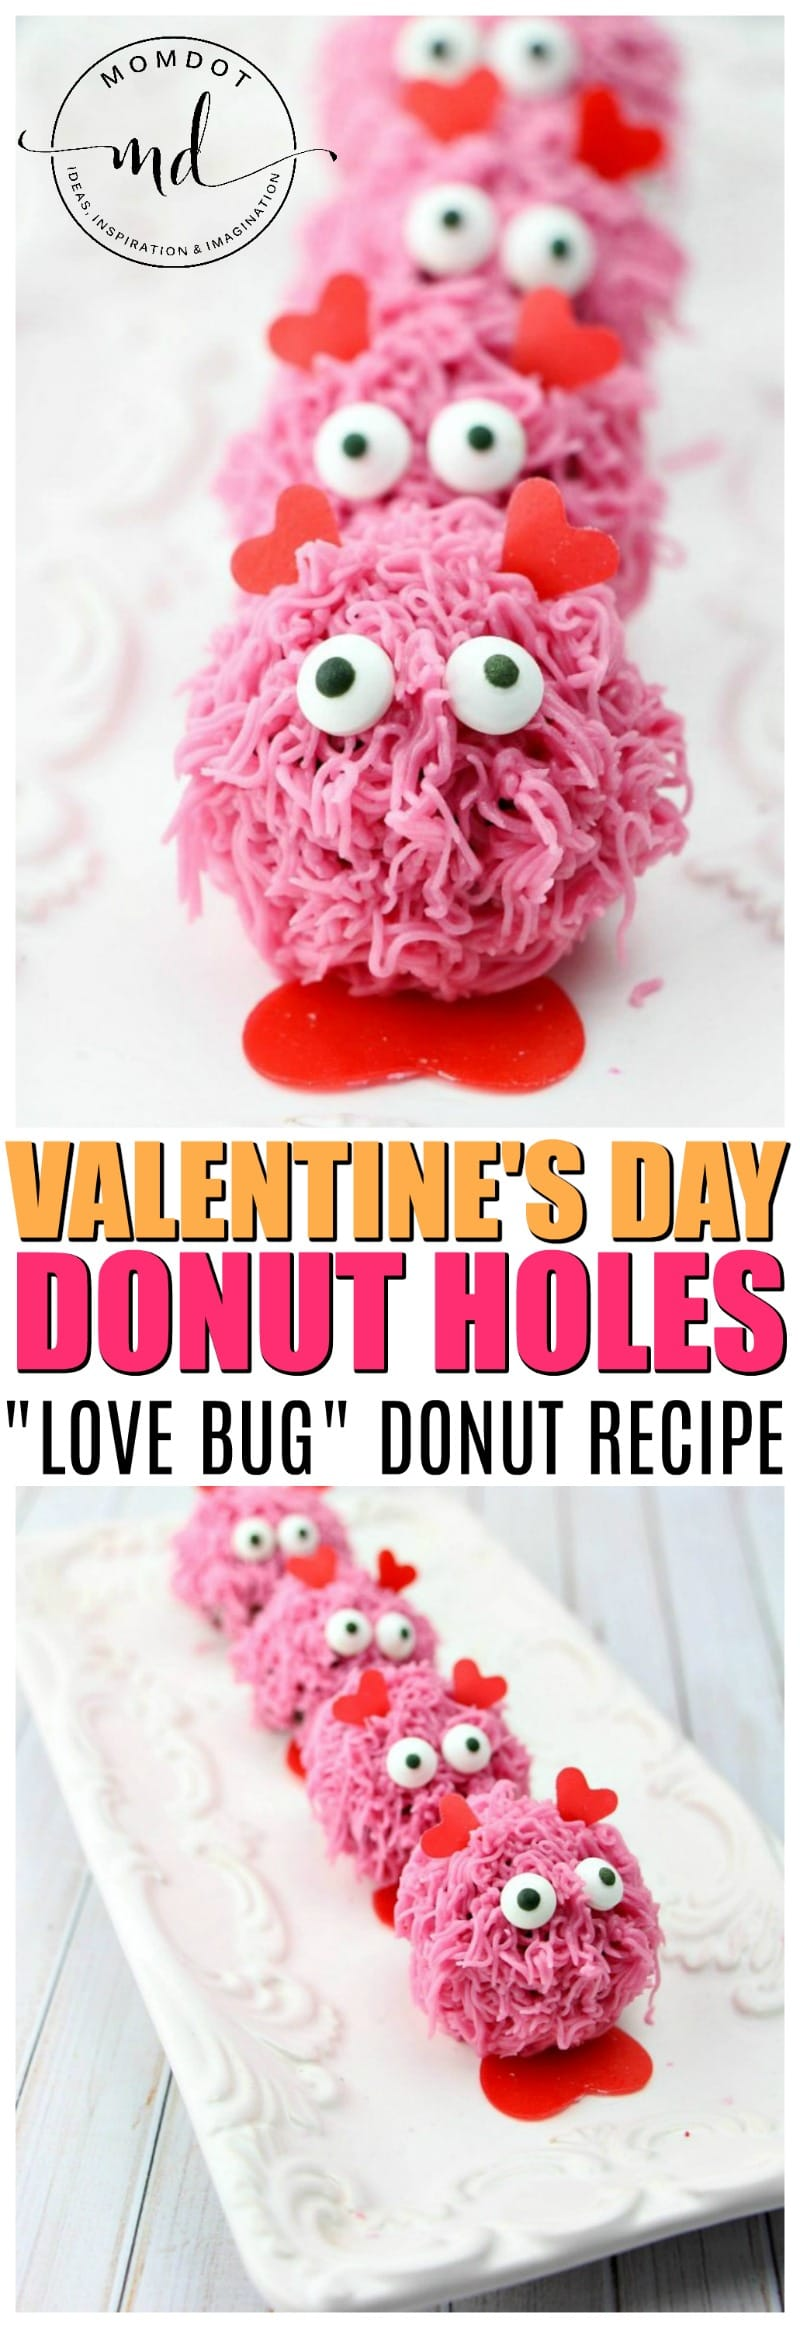 DONUT HOLE RECIPE